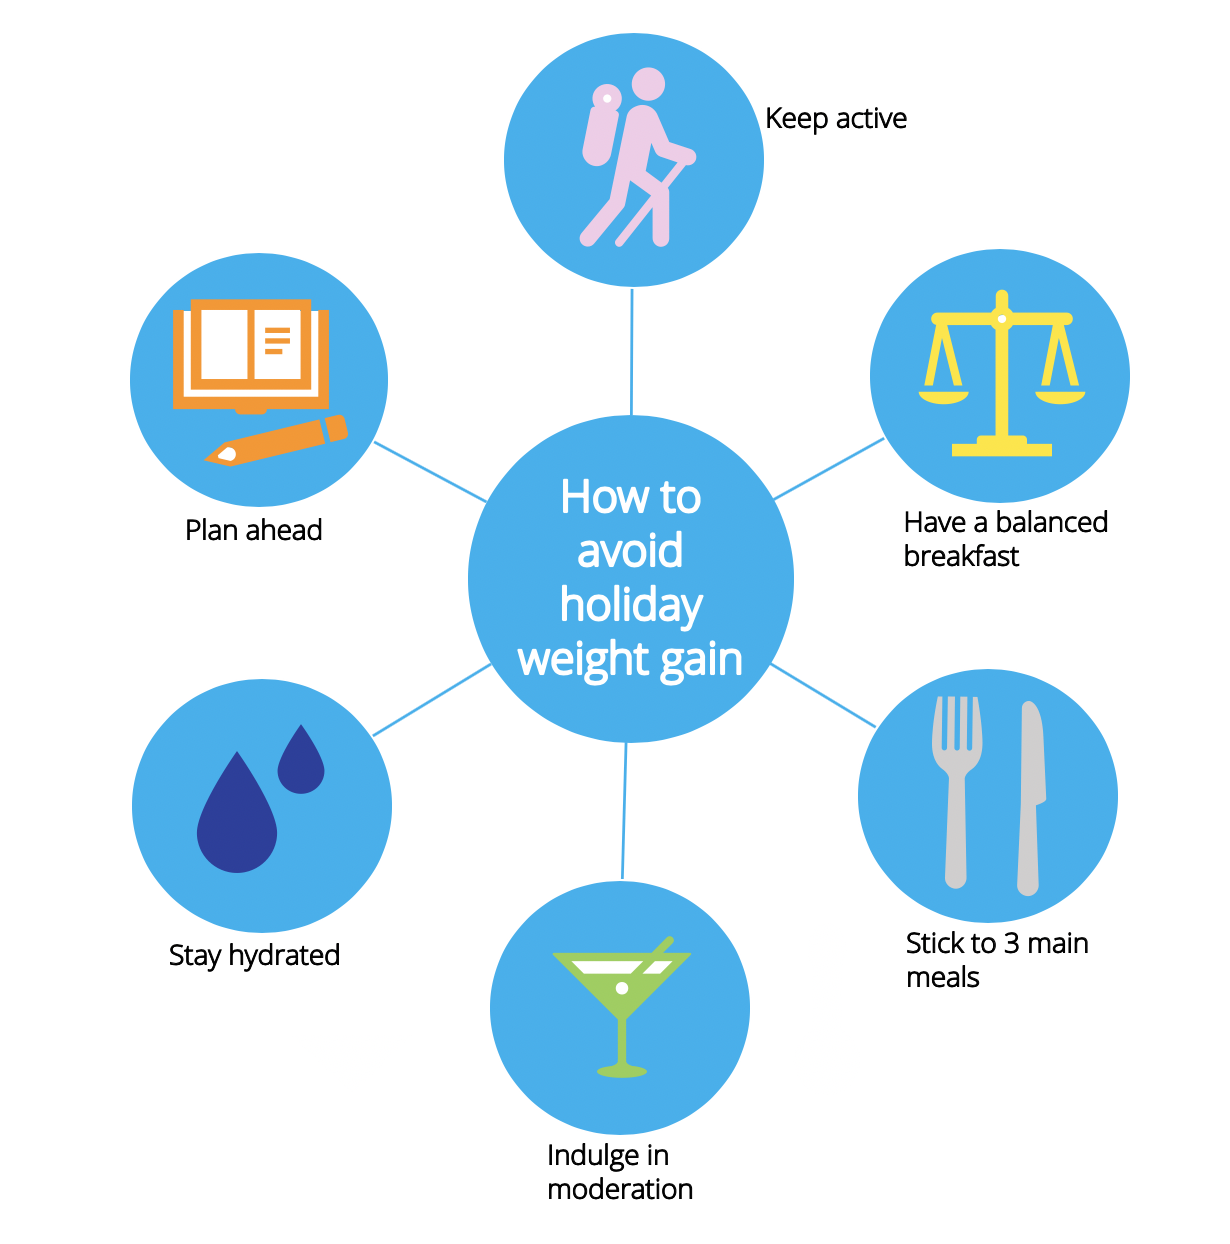 Top tips to avoid holiday weight gain.